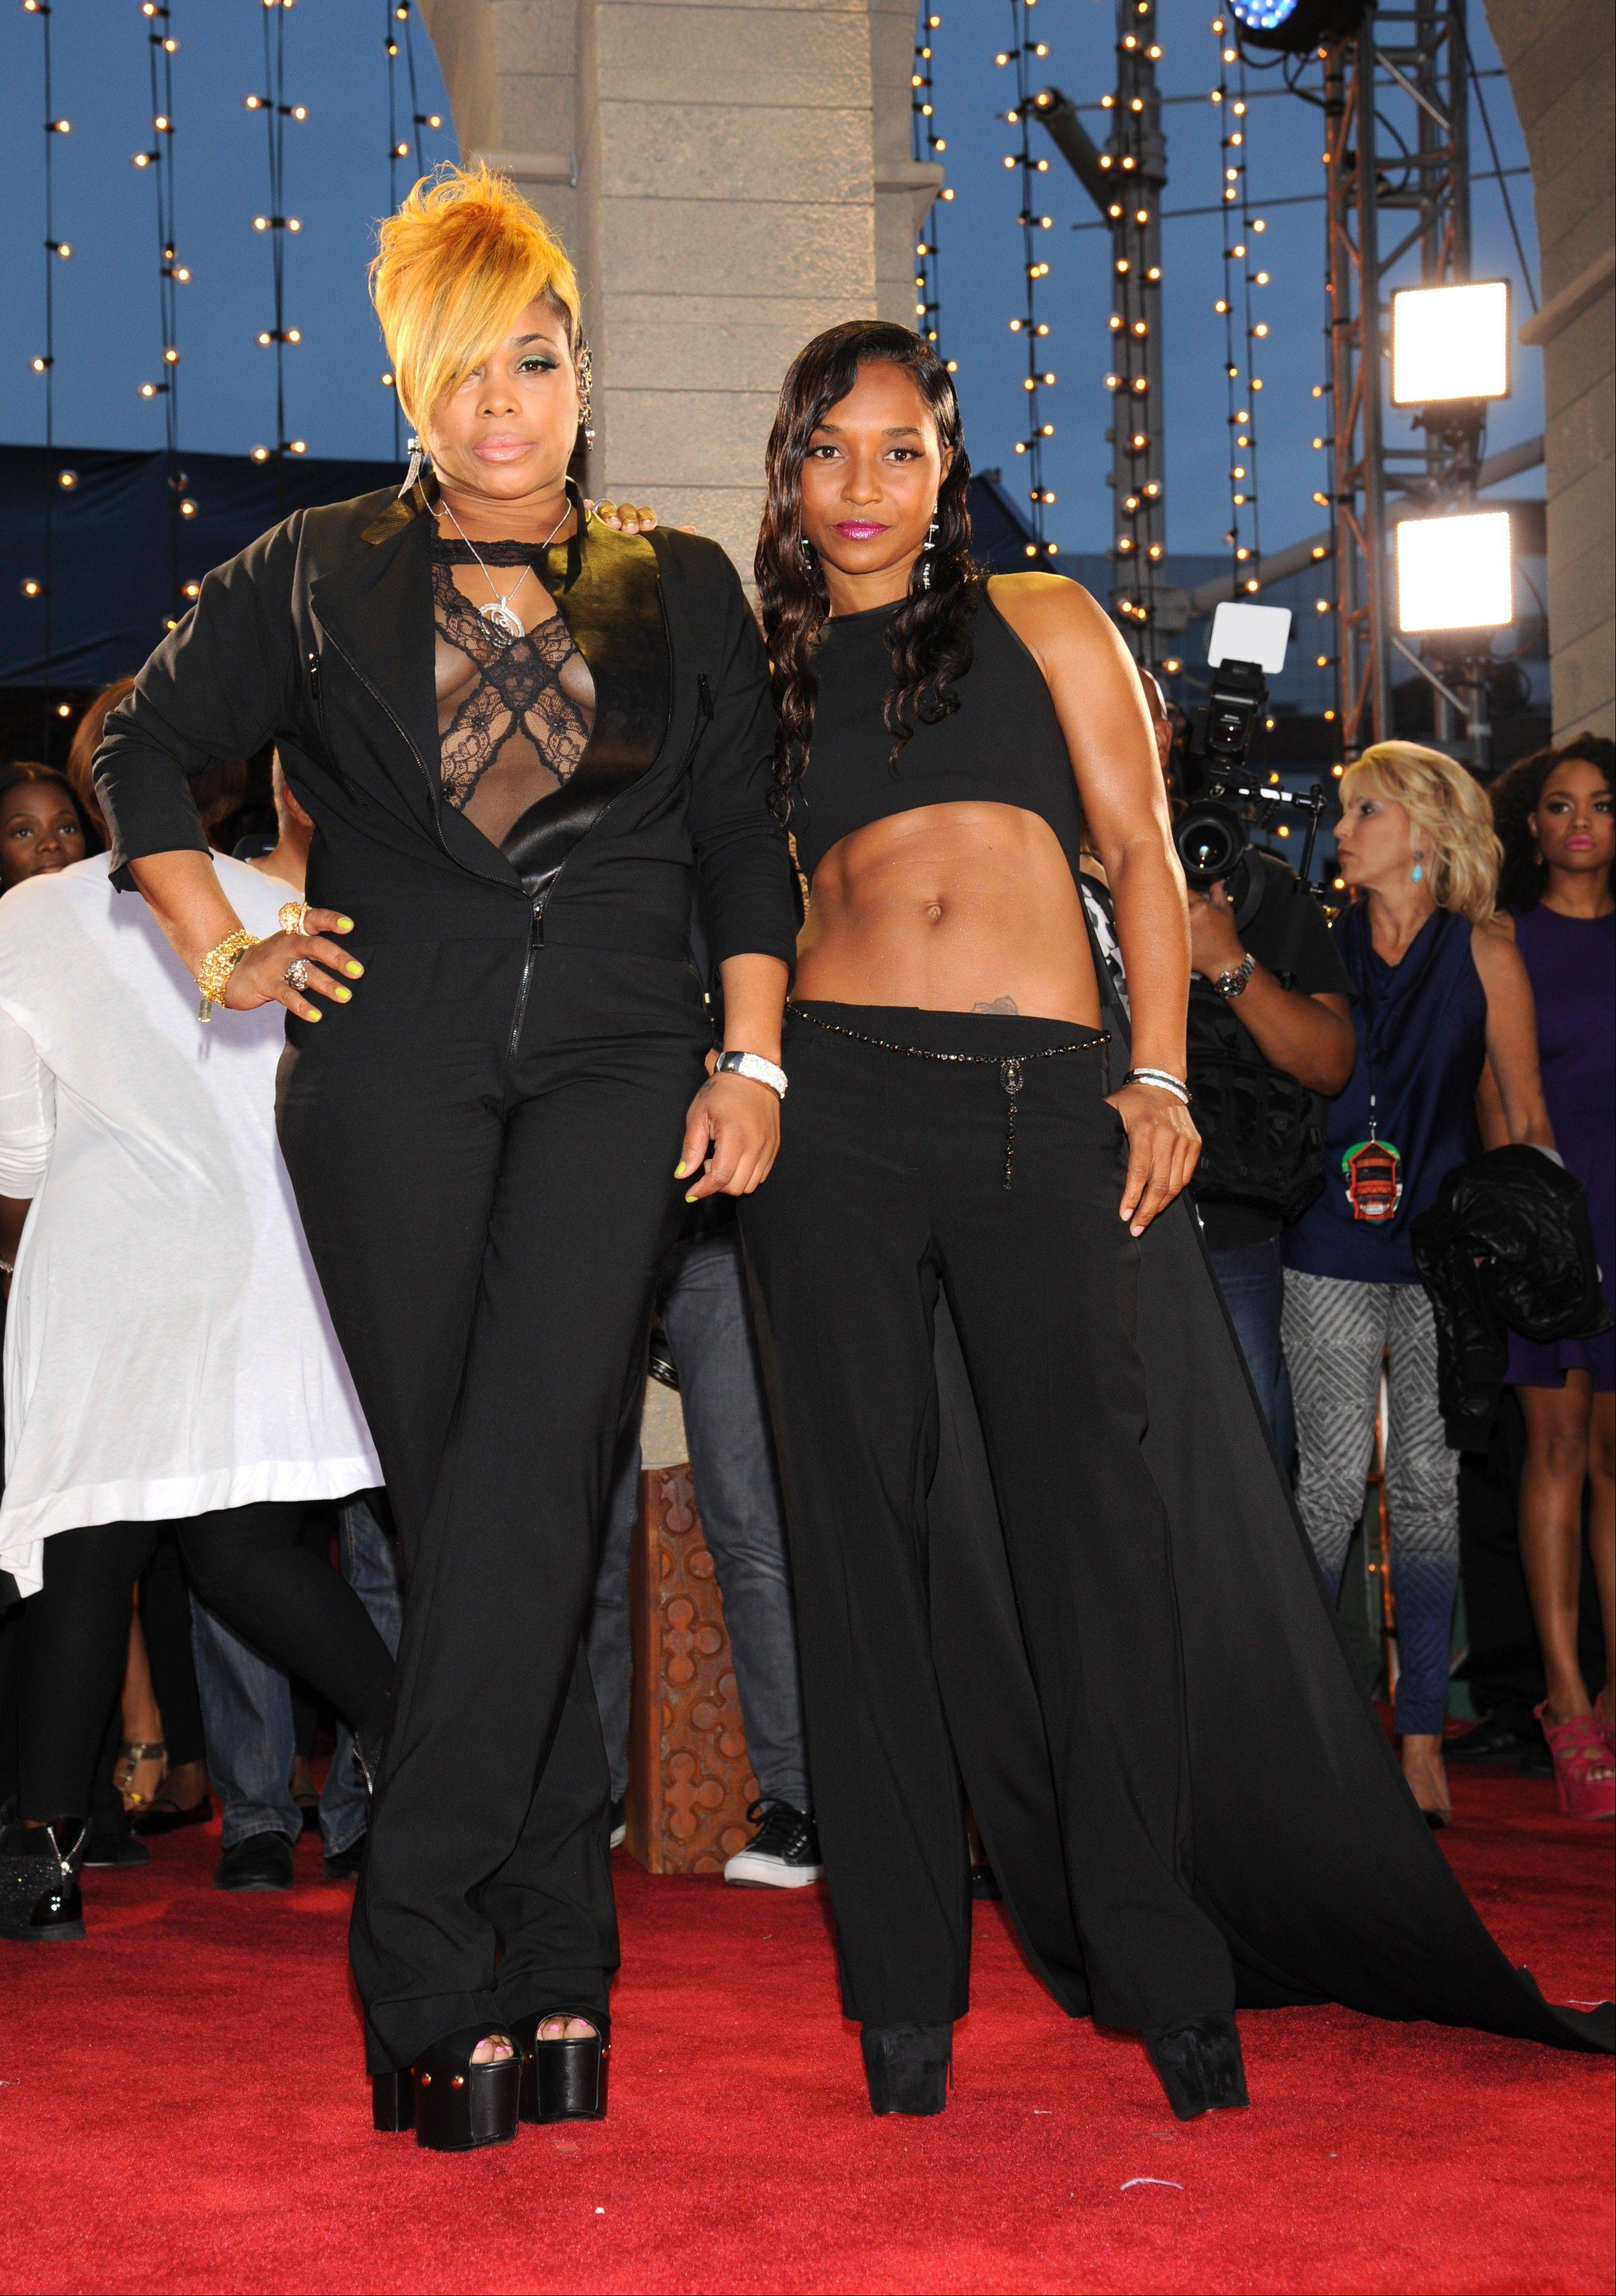 Tionne 'T-Boz' Watkins and Rozonda 'Chilli' Thomas, right, of TLC arrive at the MTV Video Music Awards on Sunday, Aug. 25, 2013, at the Barclays Center in the Brooklyn borough of New York.